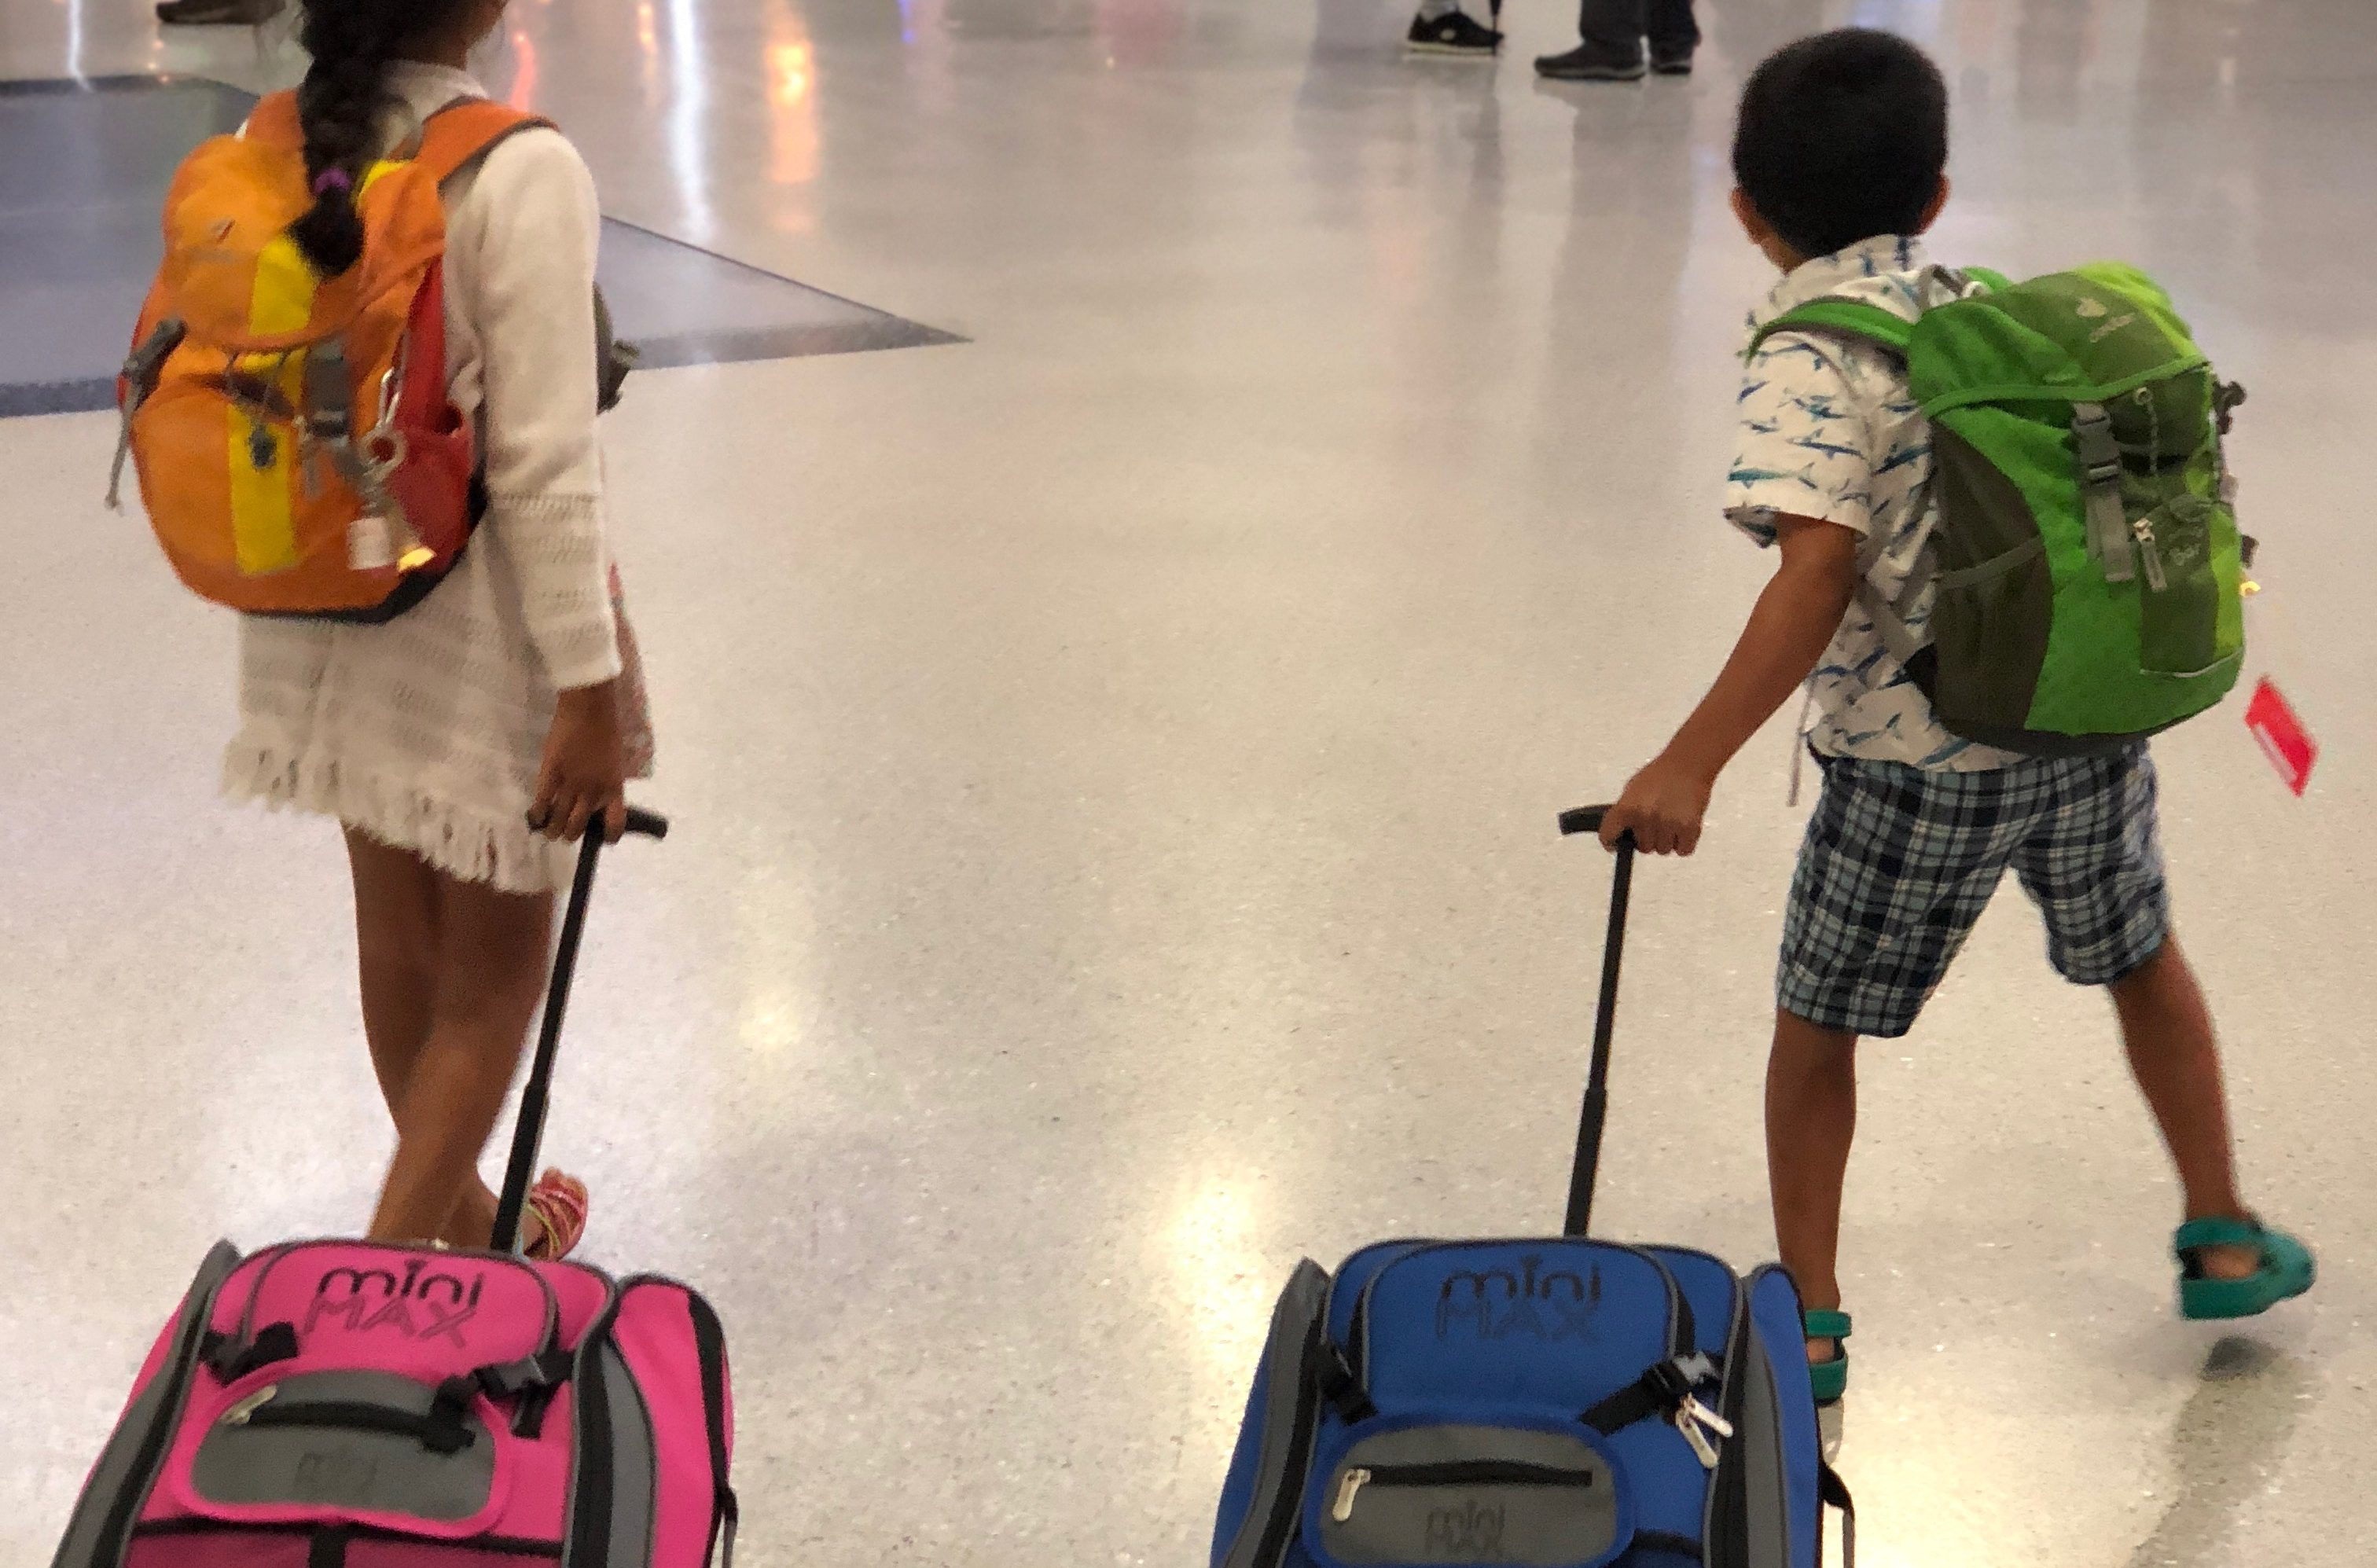 kids at an airport, with backpacks and suitcases